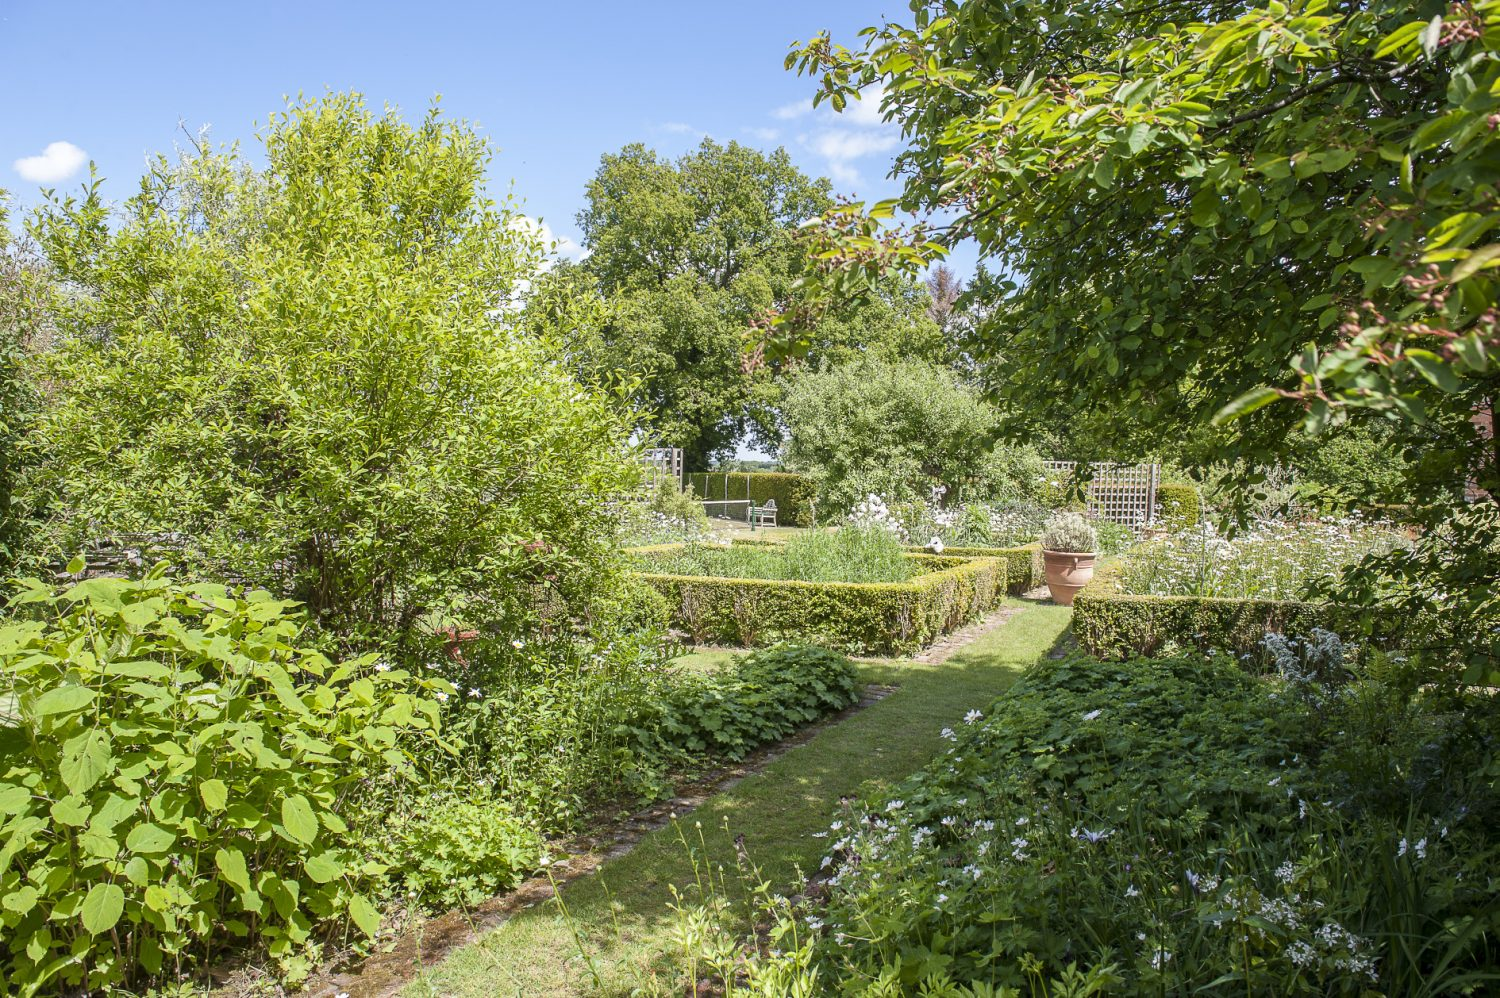 Throughout the garden blousy borders appear to blend seamlessly into glorious open countryside